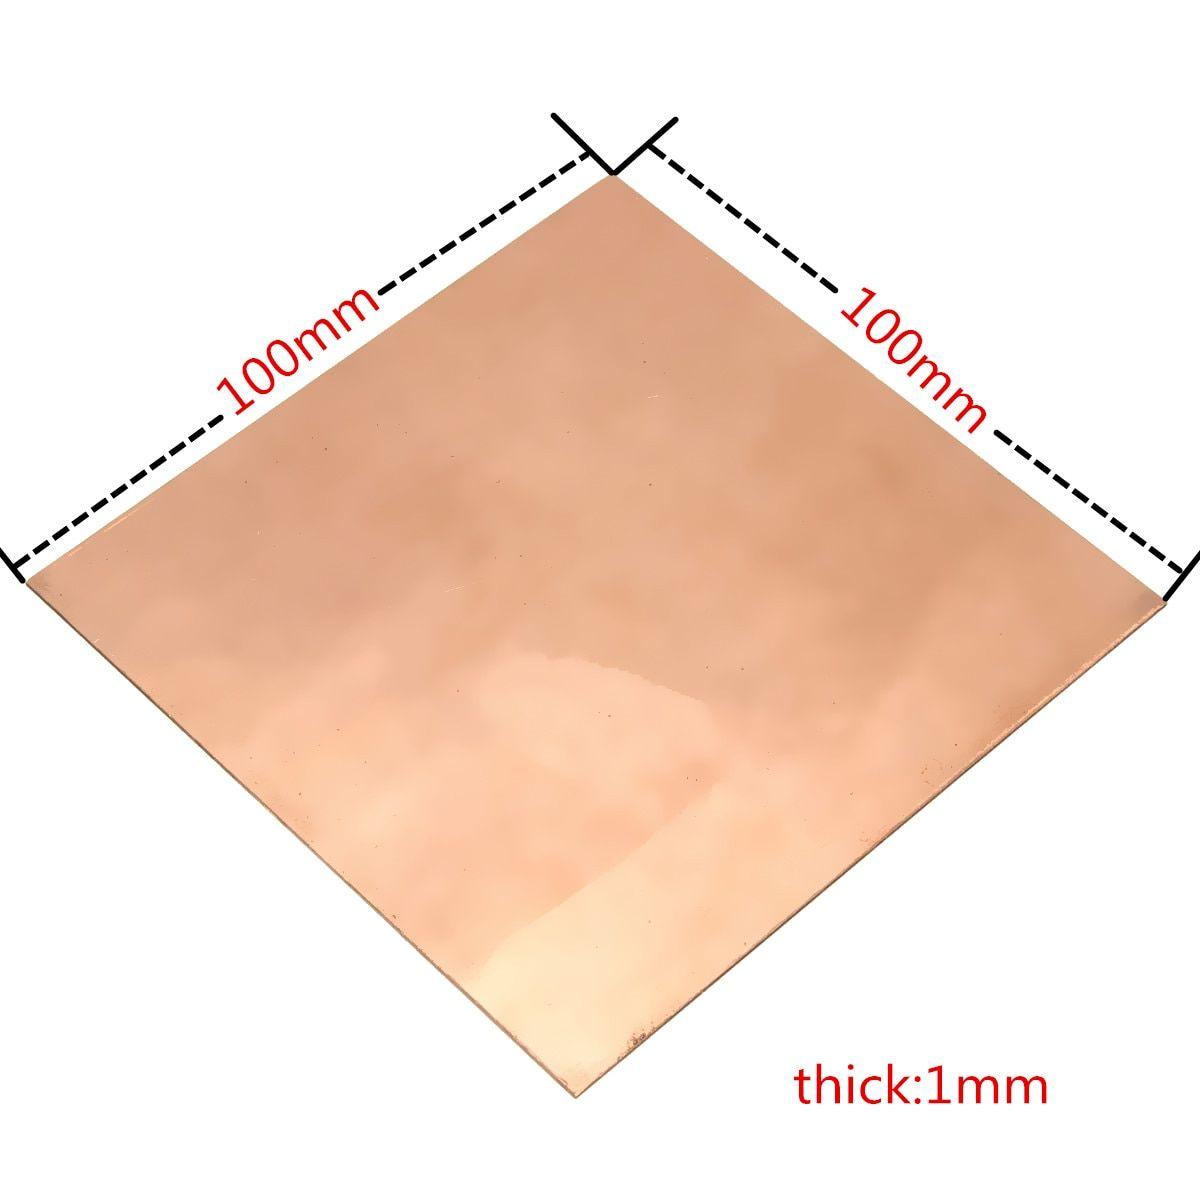 2017 Brand New 99.9% Pure Copper Cu Metal Guillotine Cut Sheet Plate 1mm*100mm*100mm Safe Using Wholesale price